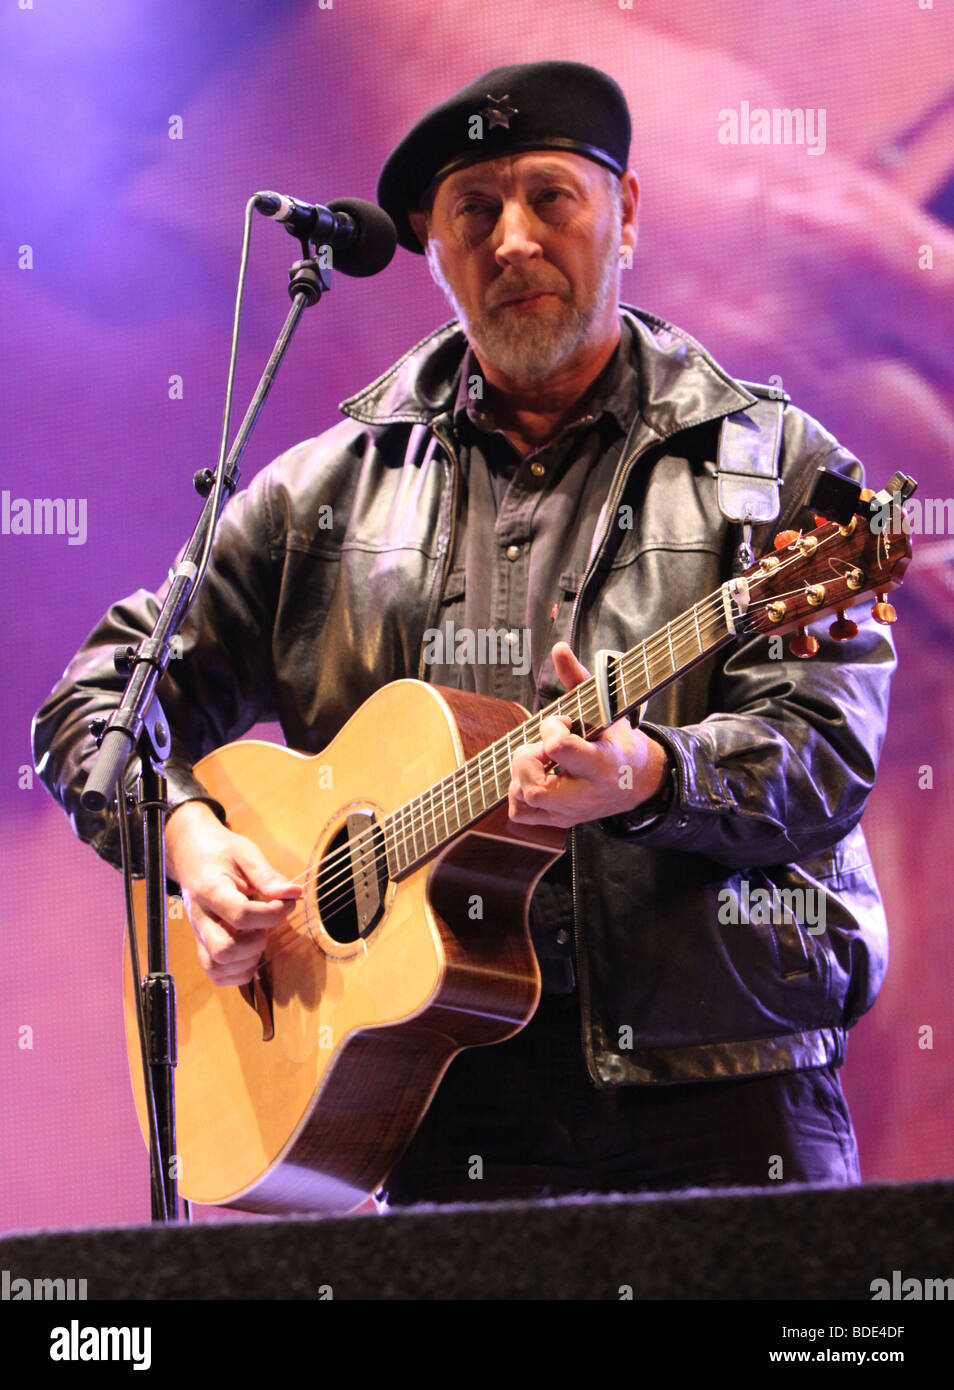 Richard Thompson at Fairport Convention's Cropredy Festival 14th August 2009 - Stock Image